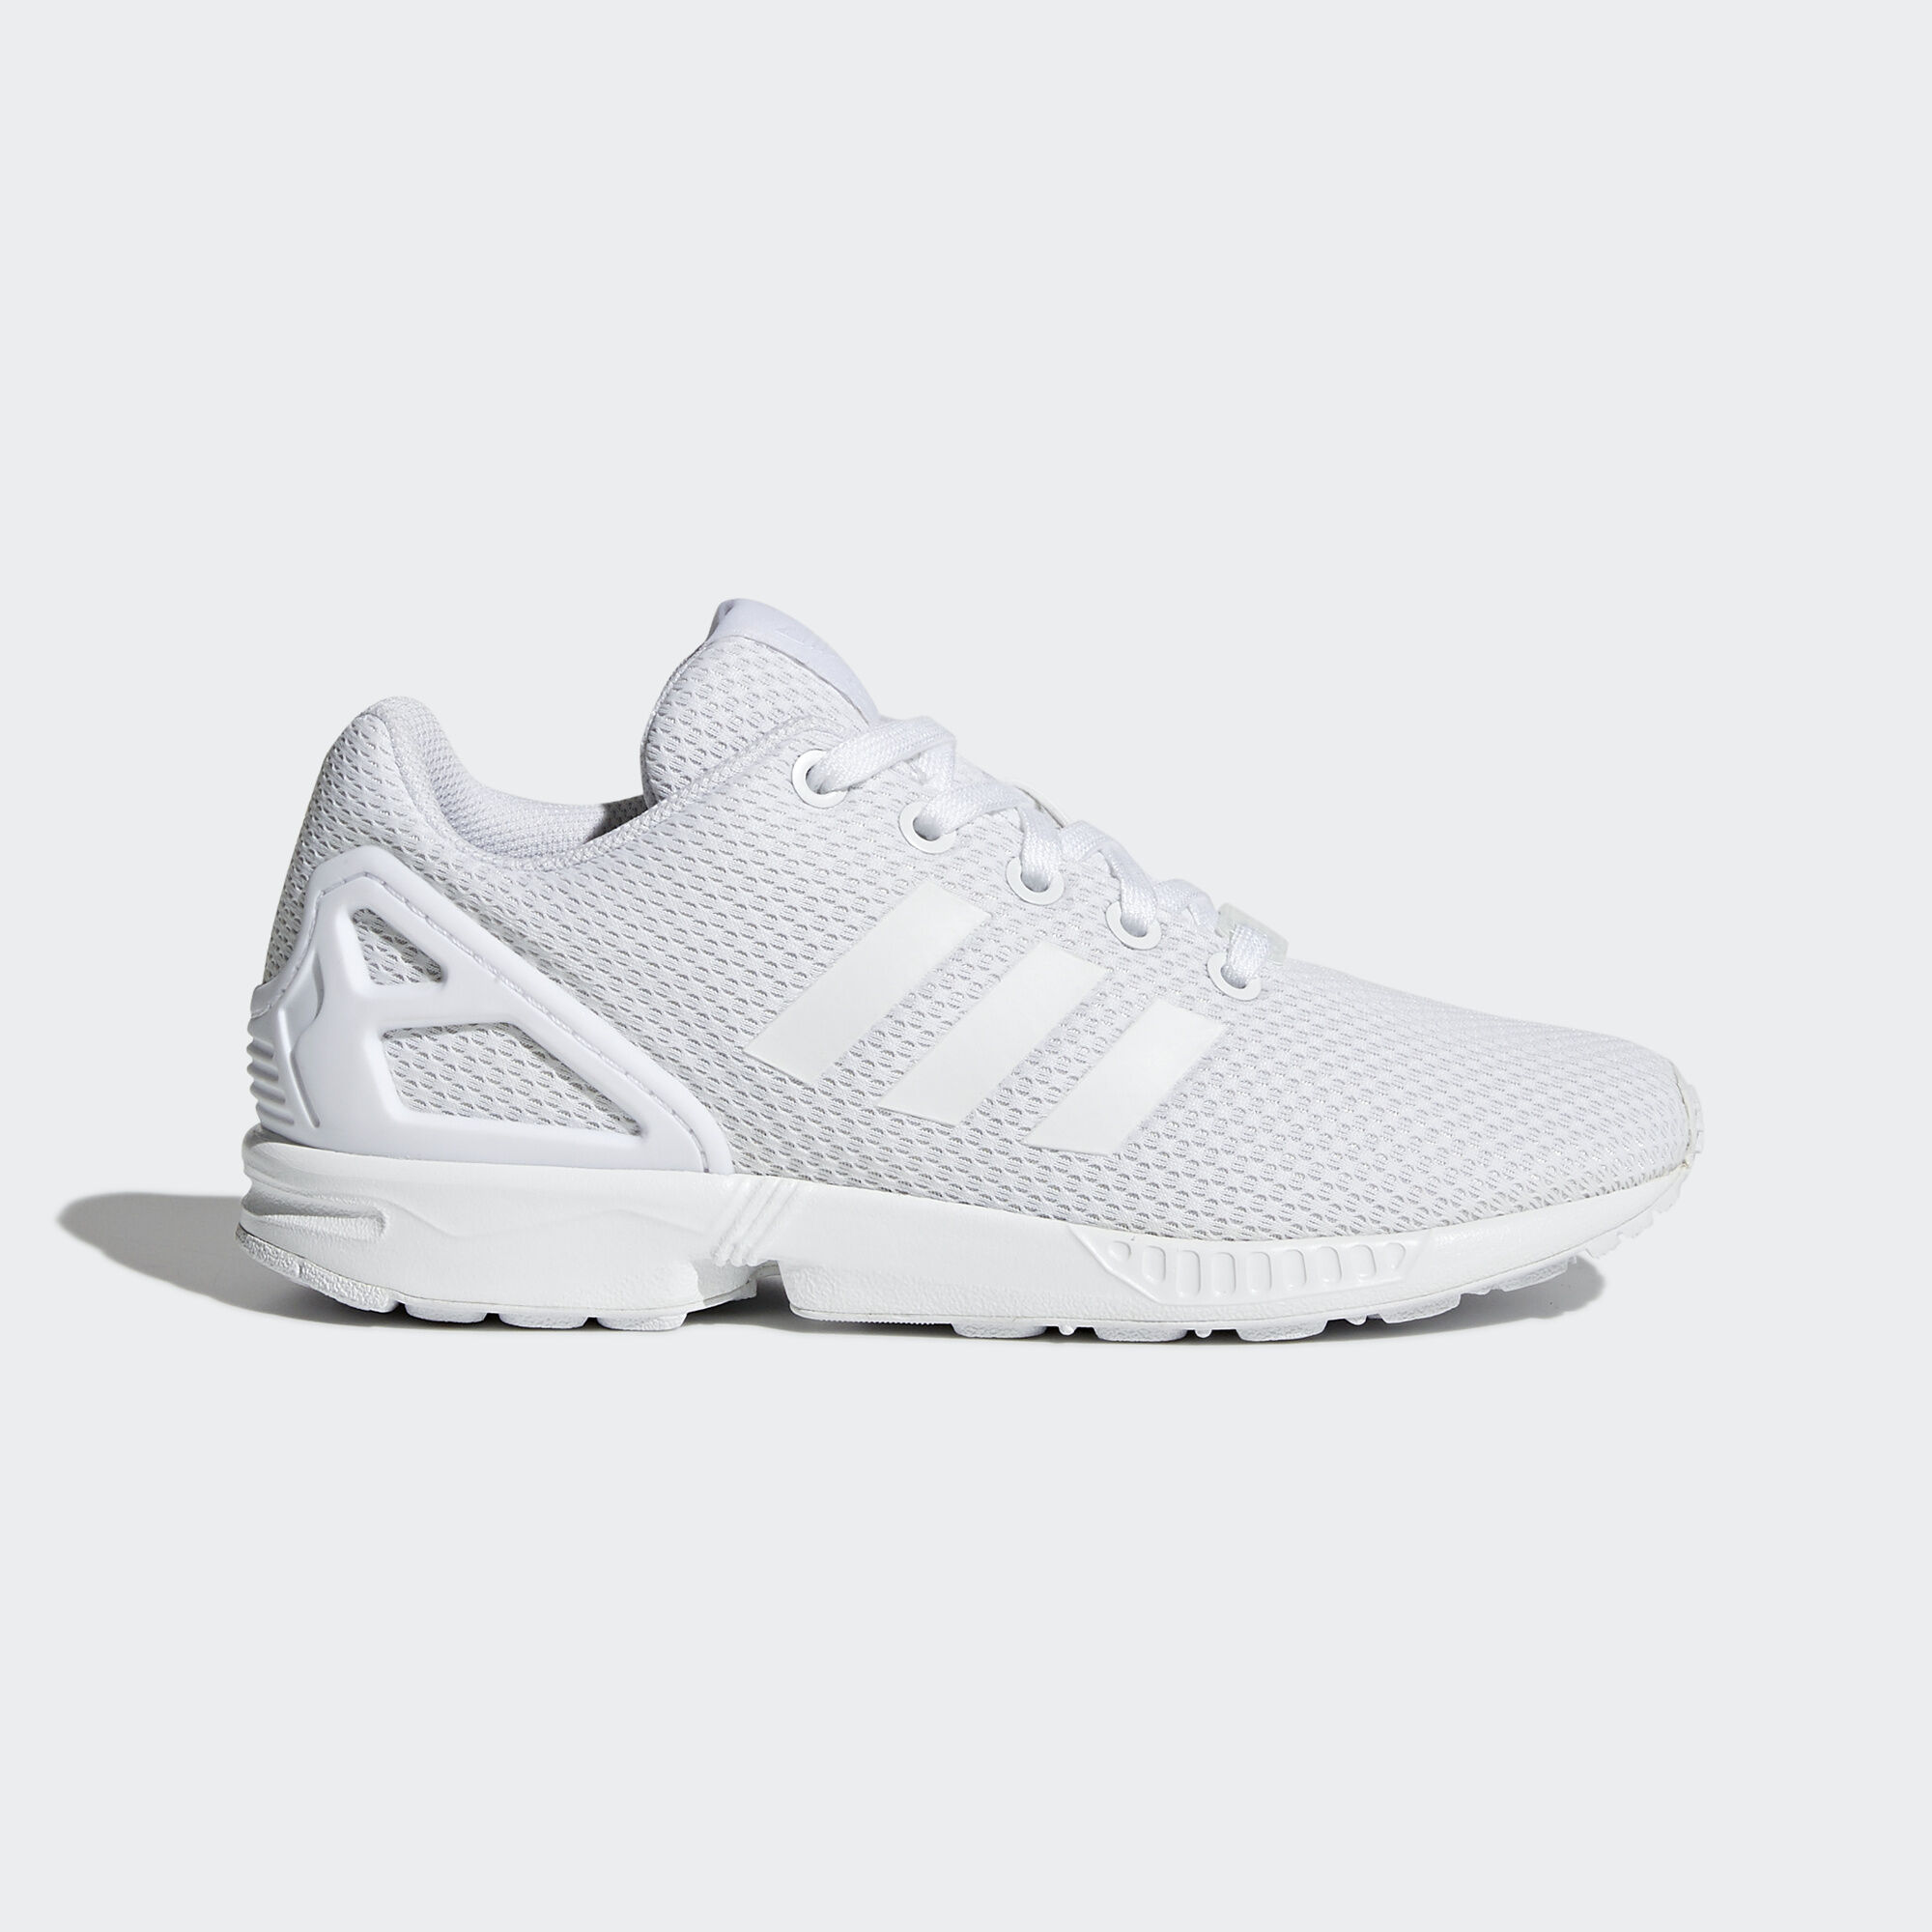 adidas zx trainers uk slang